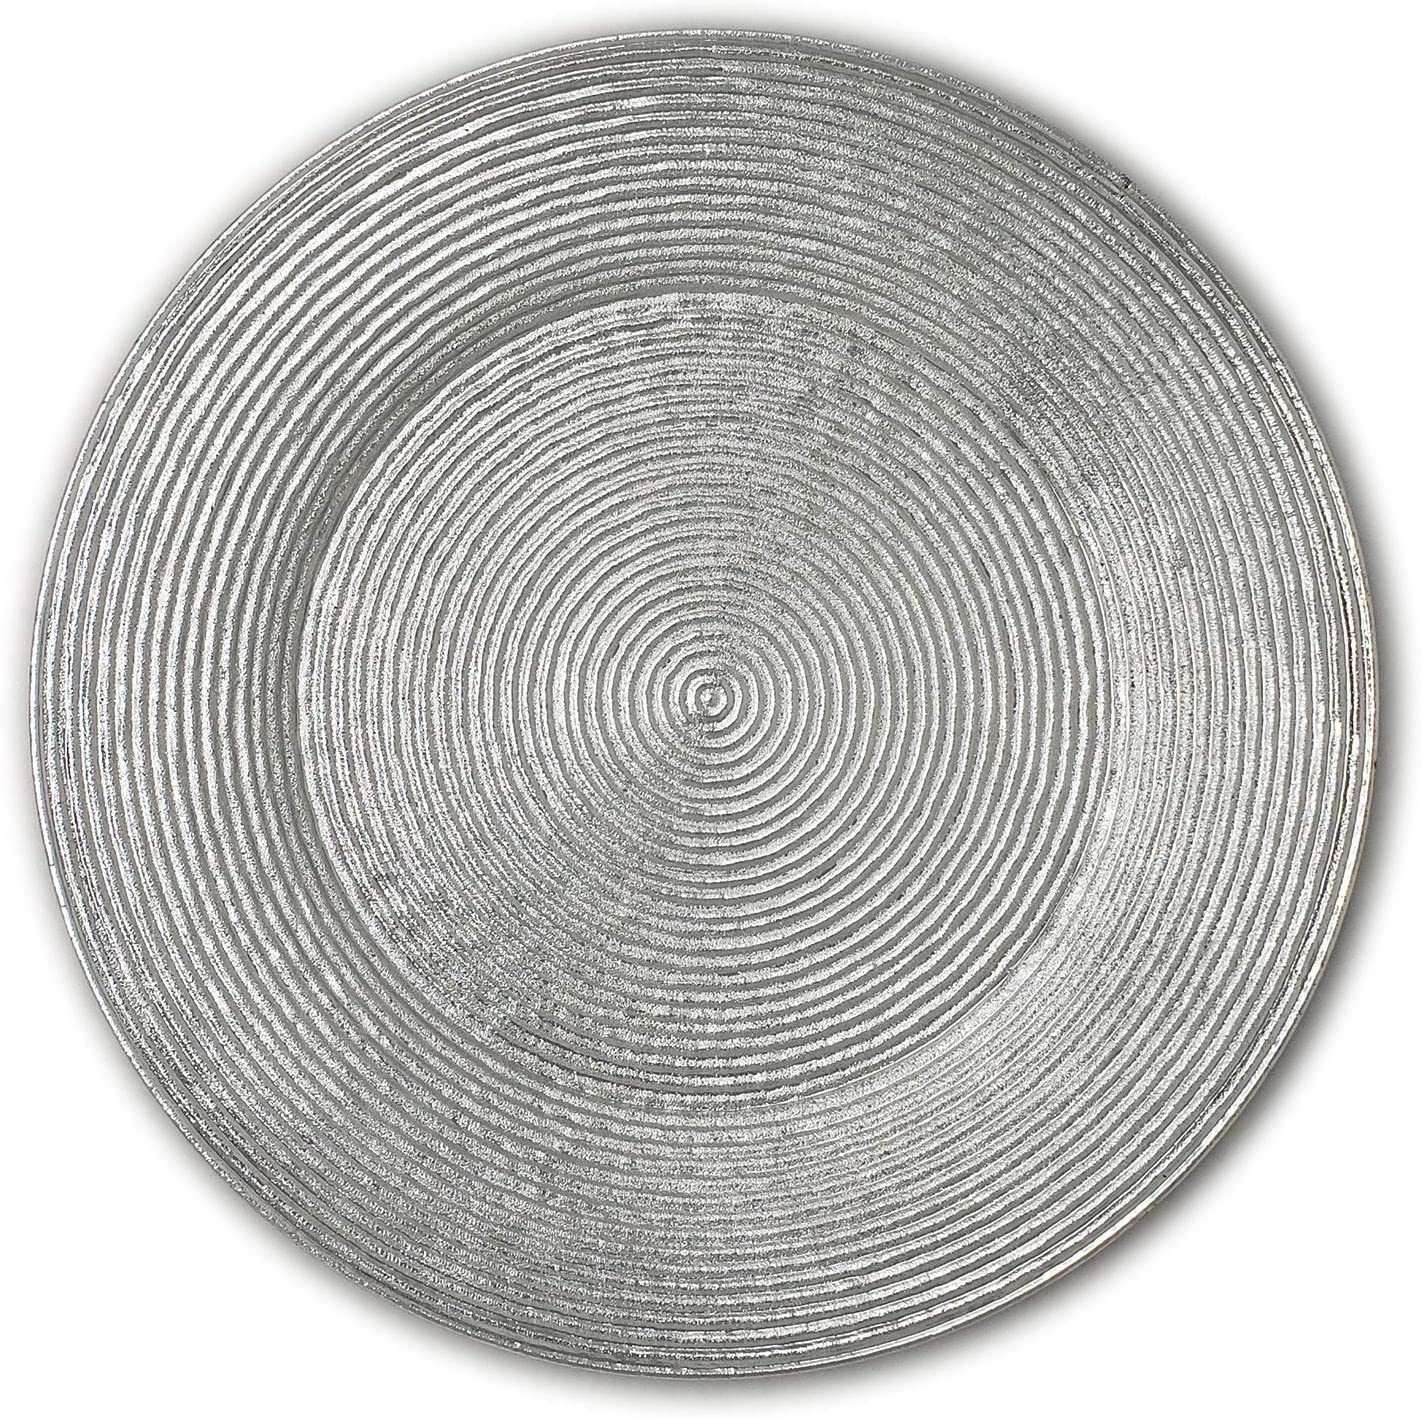 Lovely Christmas Dinnerware Formal Max 42% OFF Max 50% OFF Spiral Round Charger 13-Inch